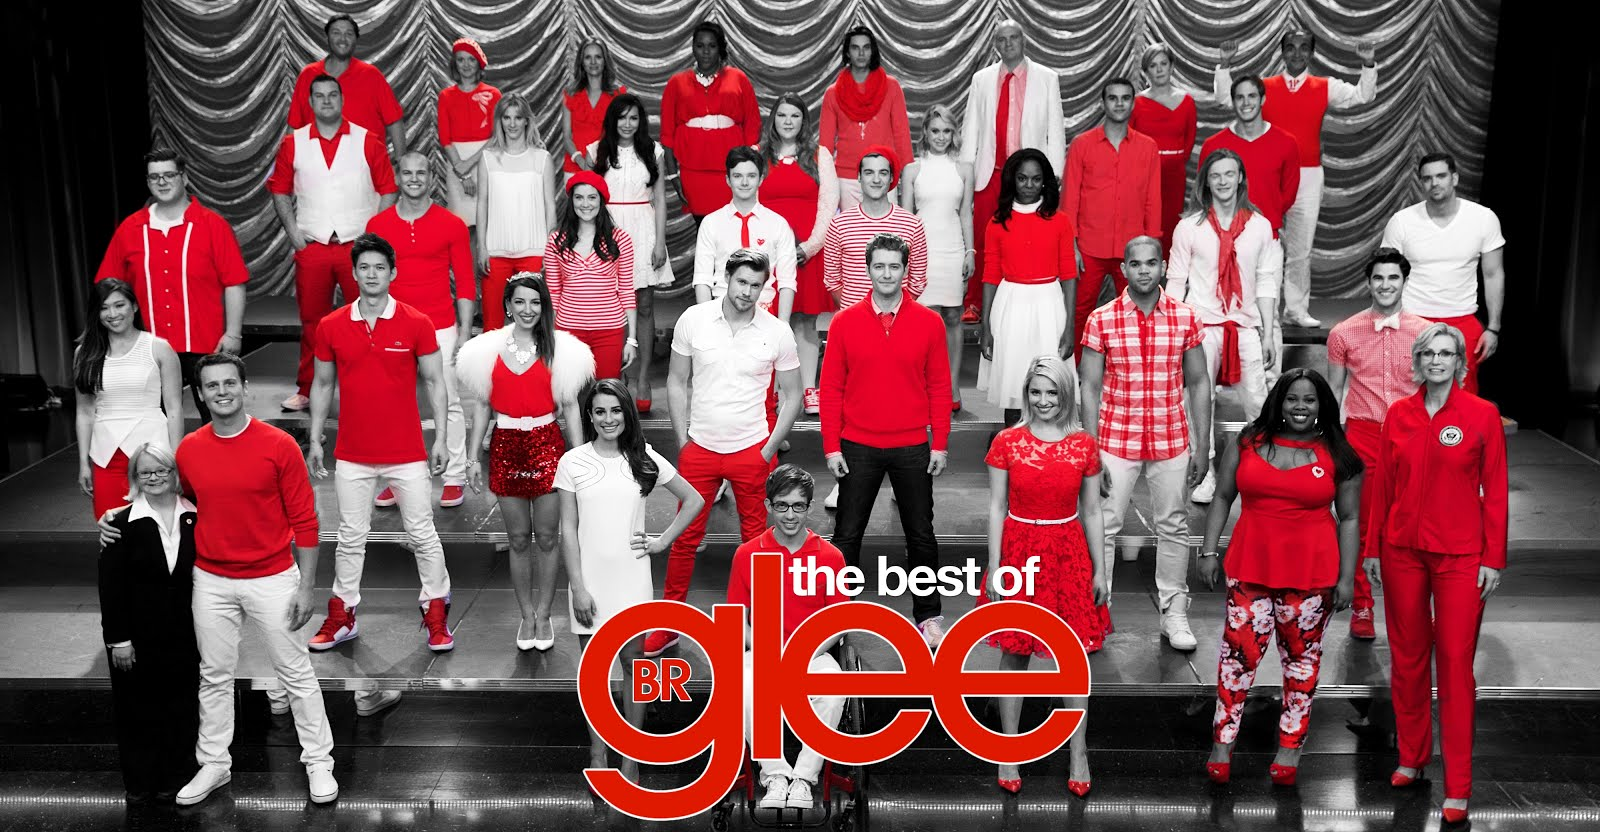 The Best of Glee BR